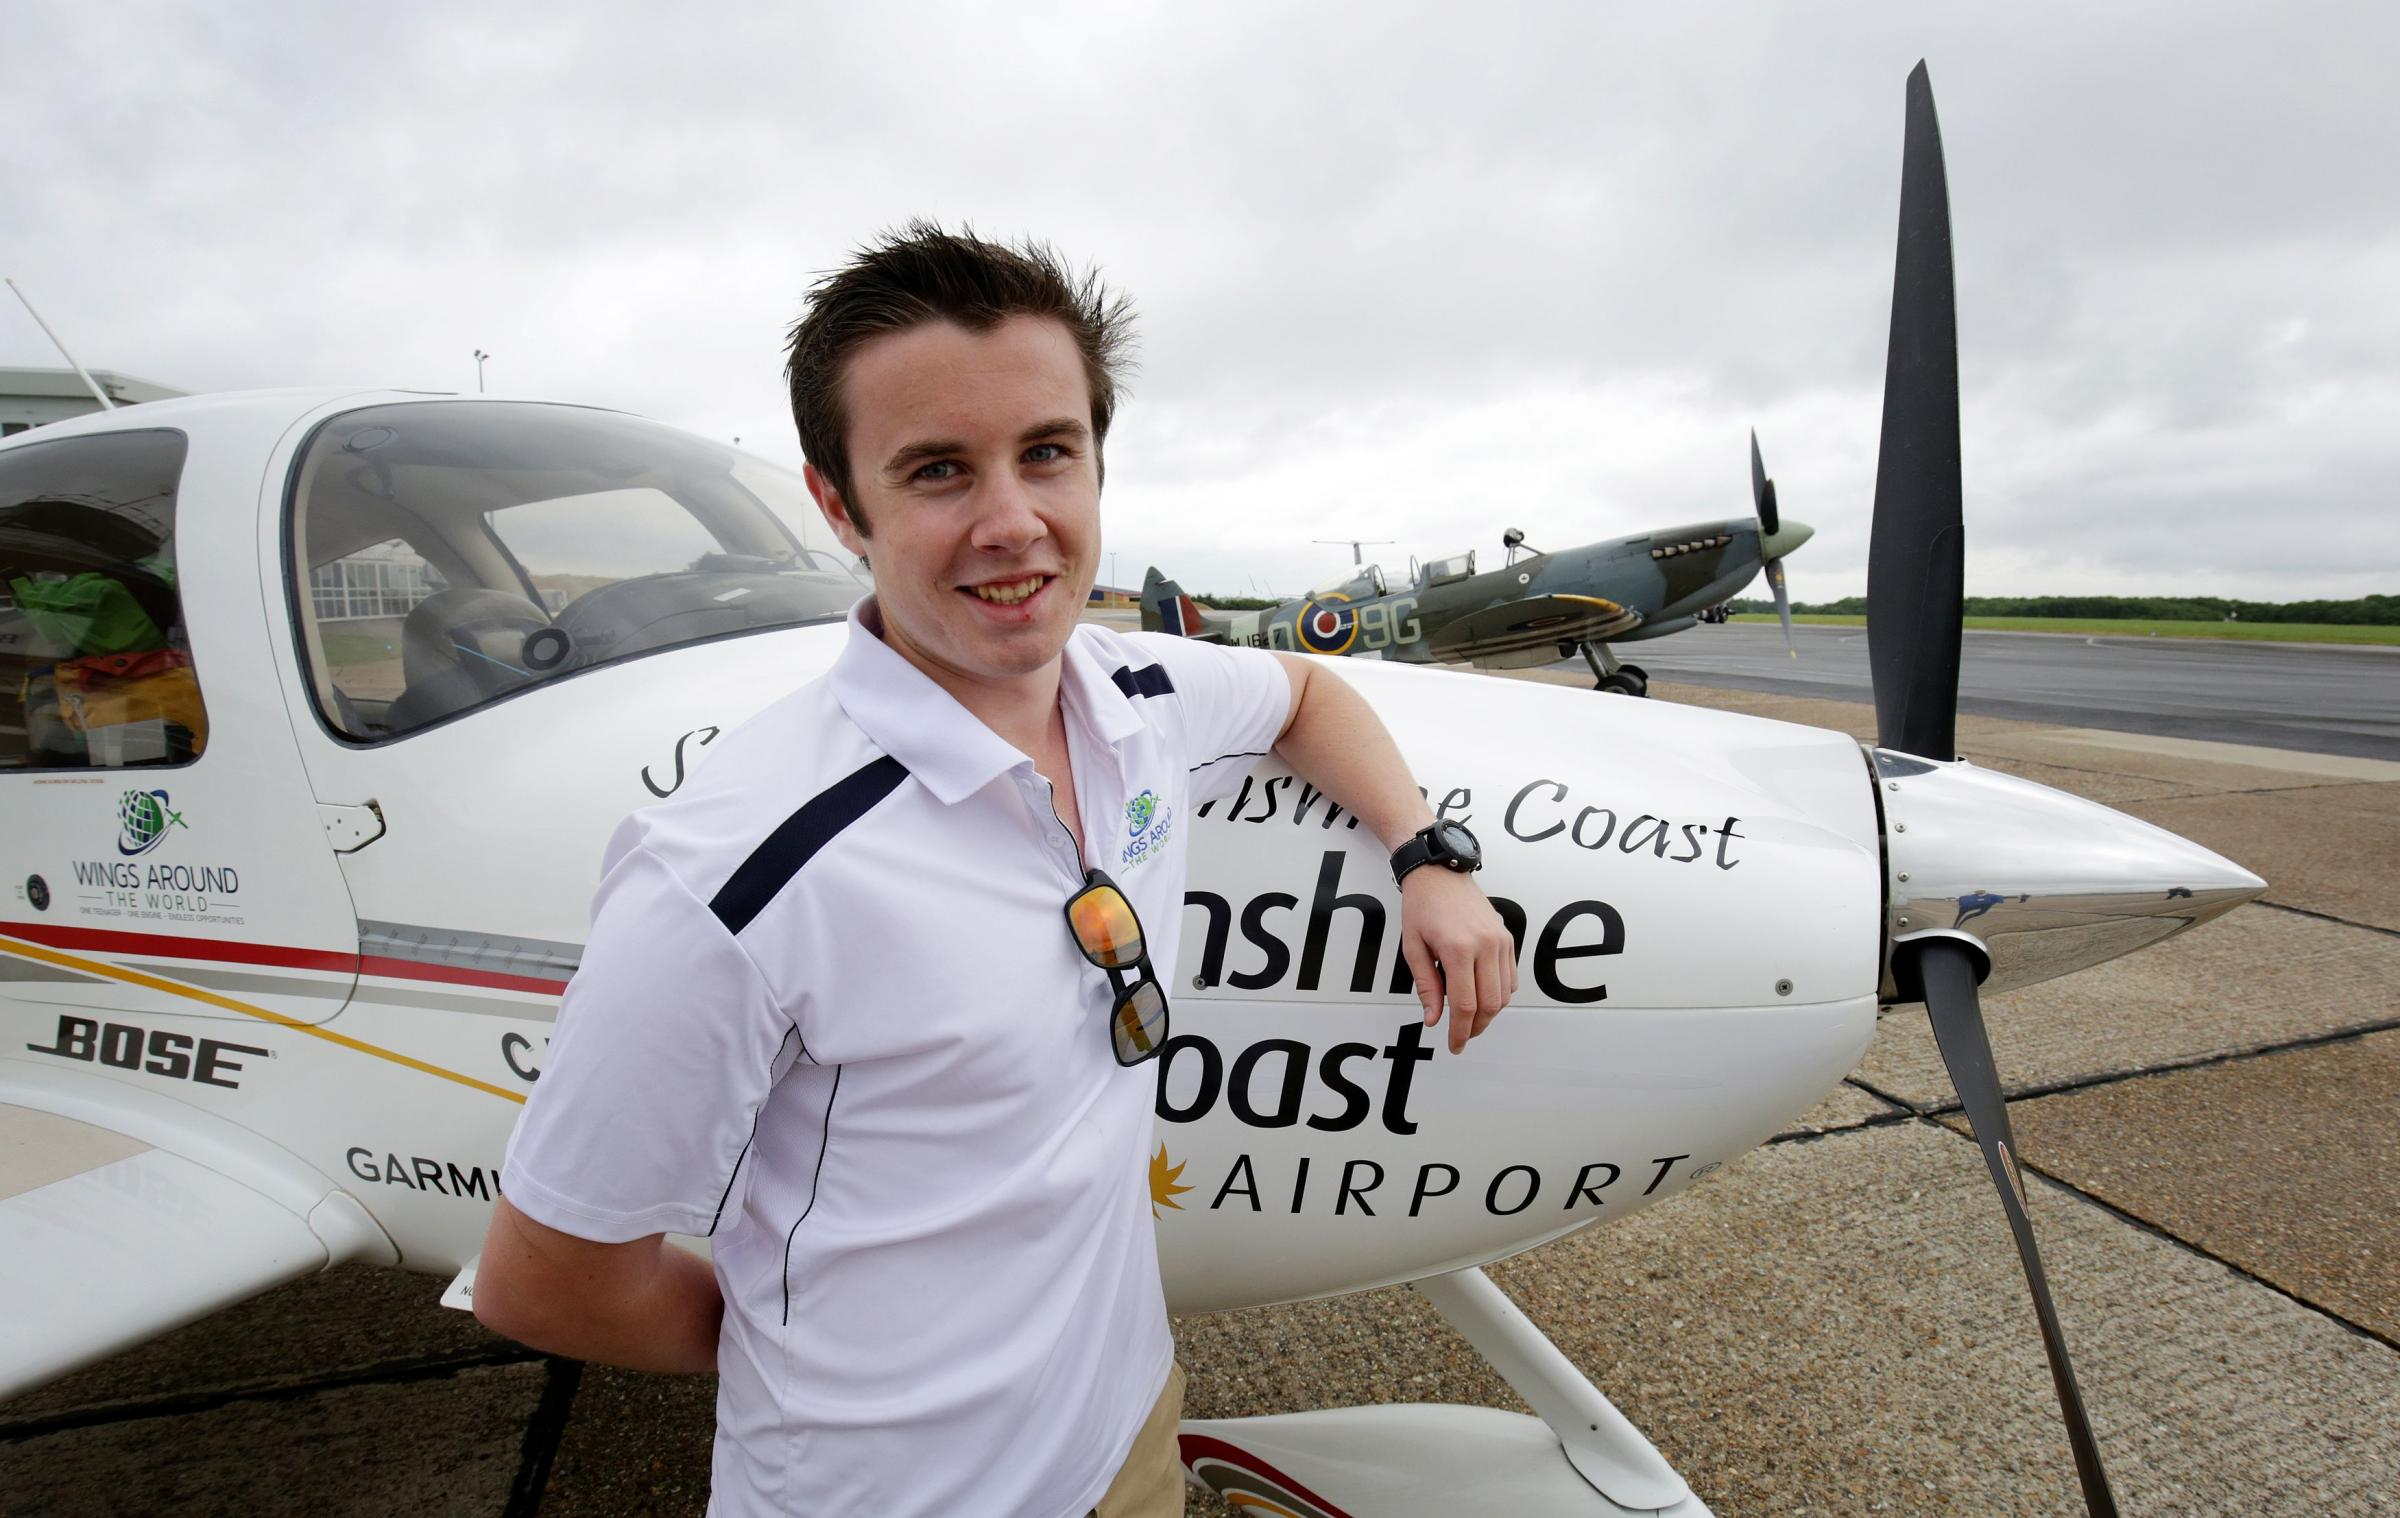 Lachlan Smart, 18, poses with his Cirrus SR-22 plane at Biggin Hill Airport in Kent, during a stopover on his eight-week, 24,000-nautical mile record bid, to be the youngest person to fly solo around the world in a single engine aircraft. PRESS ASSOCIATION Photo. Picture date: Wednesday July 27, 2016. Smart is now on an 11-day stopover in the UK after flying into Biggin Hill in Kent from the Azores, in the Atlantic. See PA story ADVENTURE Pilot. Photo credit should read: Gareth Fuller/PA Wire